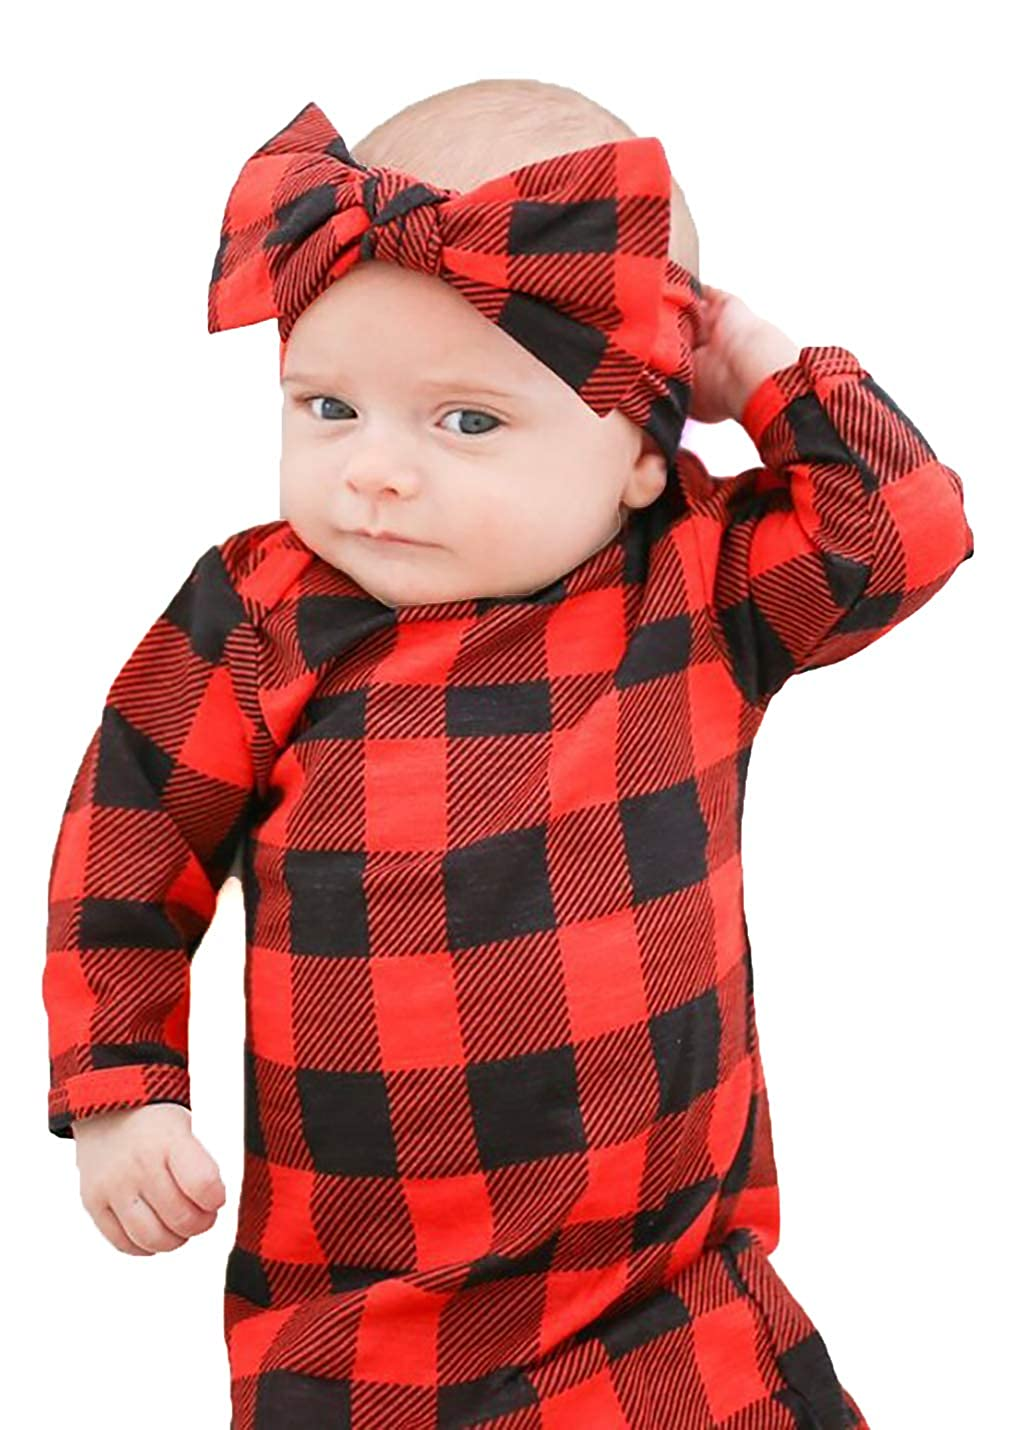 Soft Stretchy Cotton Buffalo Sleep Gown Tie Bottom Infant Baby Tie Nightgown and Matching Headband Boy Girl